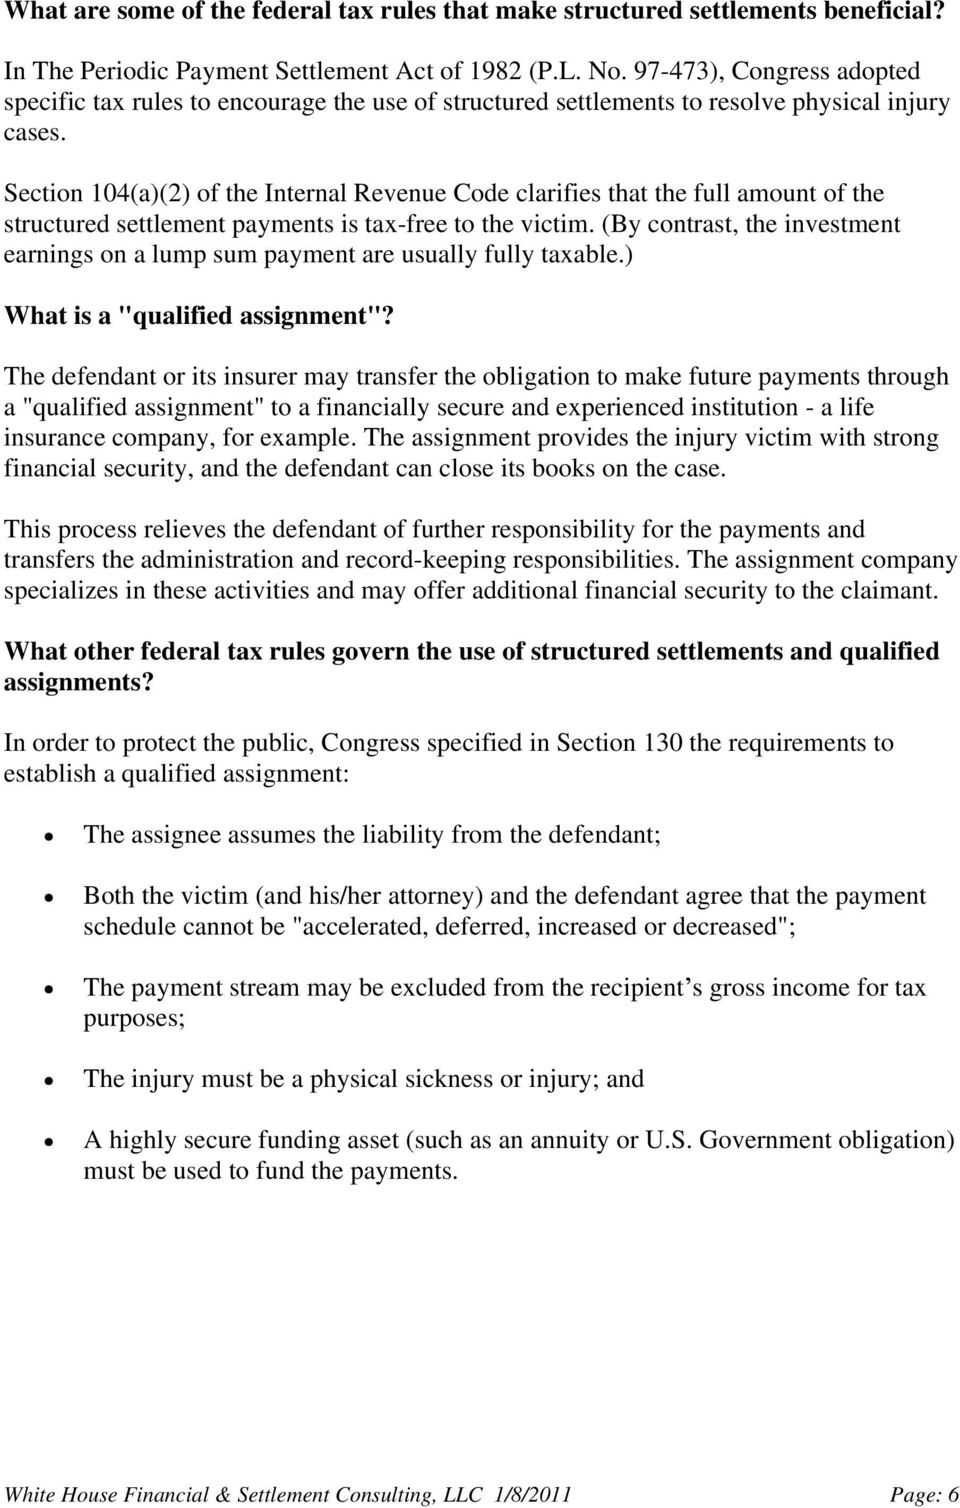 Section 104(a)(2) of the Internal Revenue Code clarifies that the full amount of the structured settlement payments is tax-free to the victim.